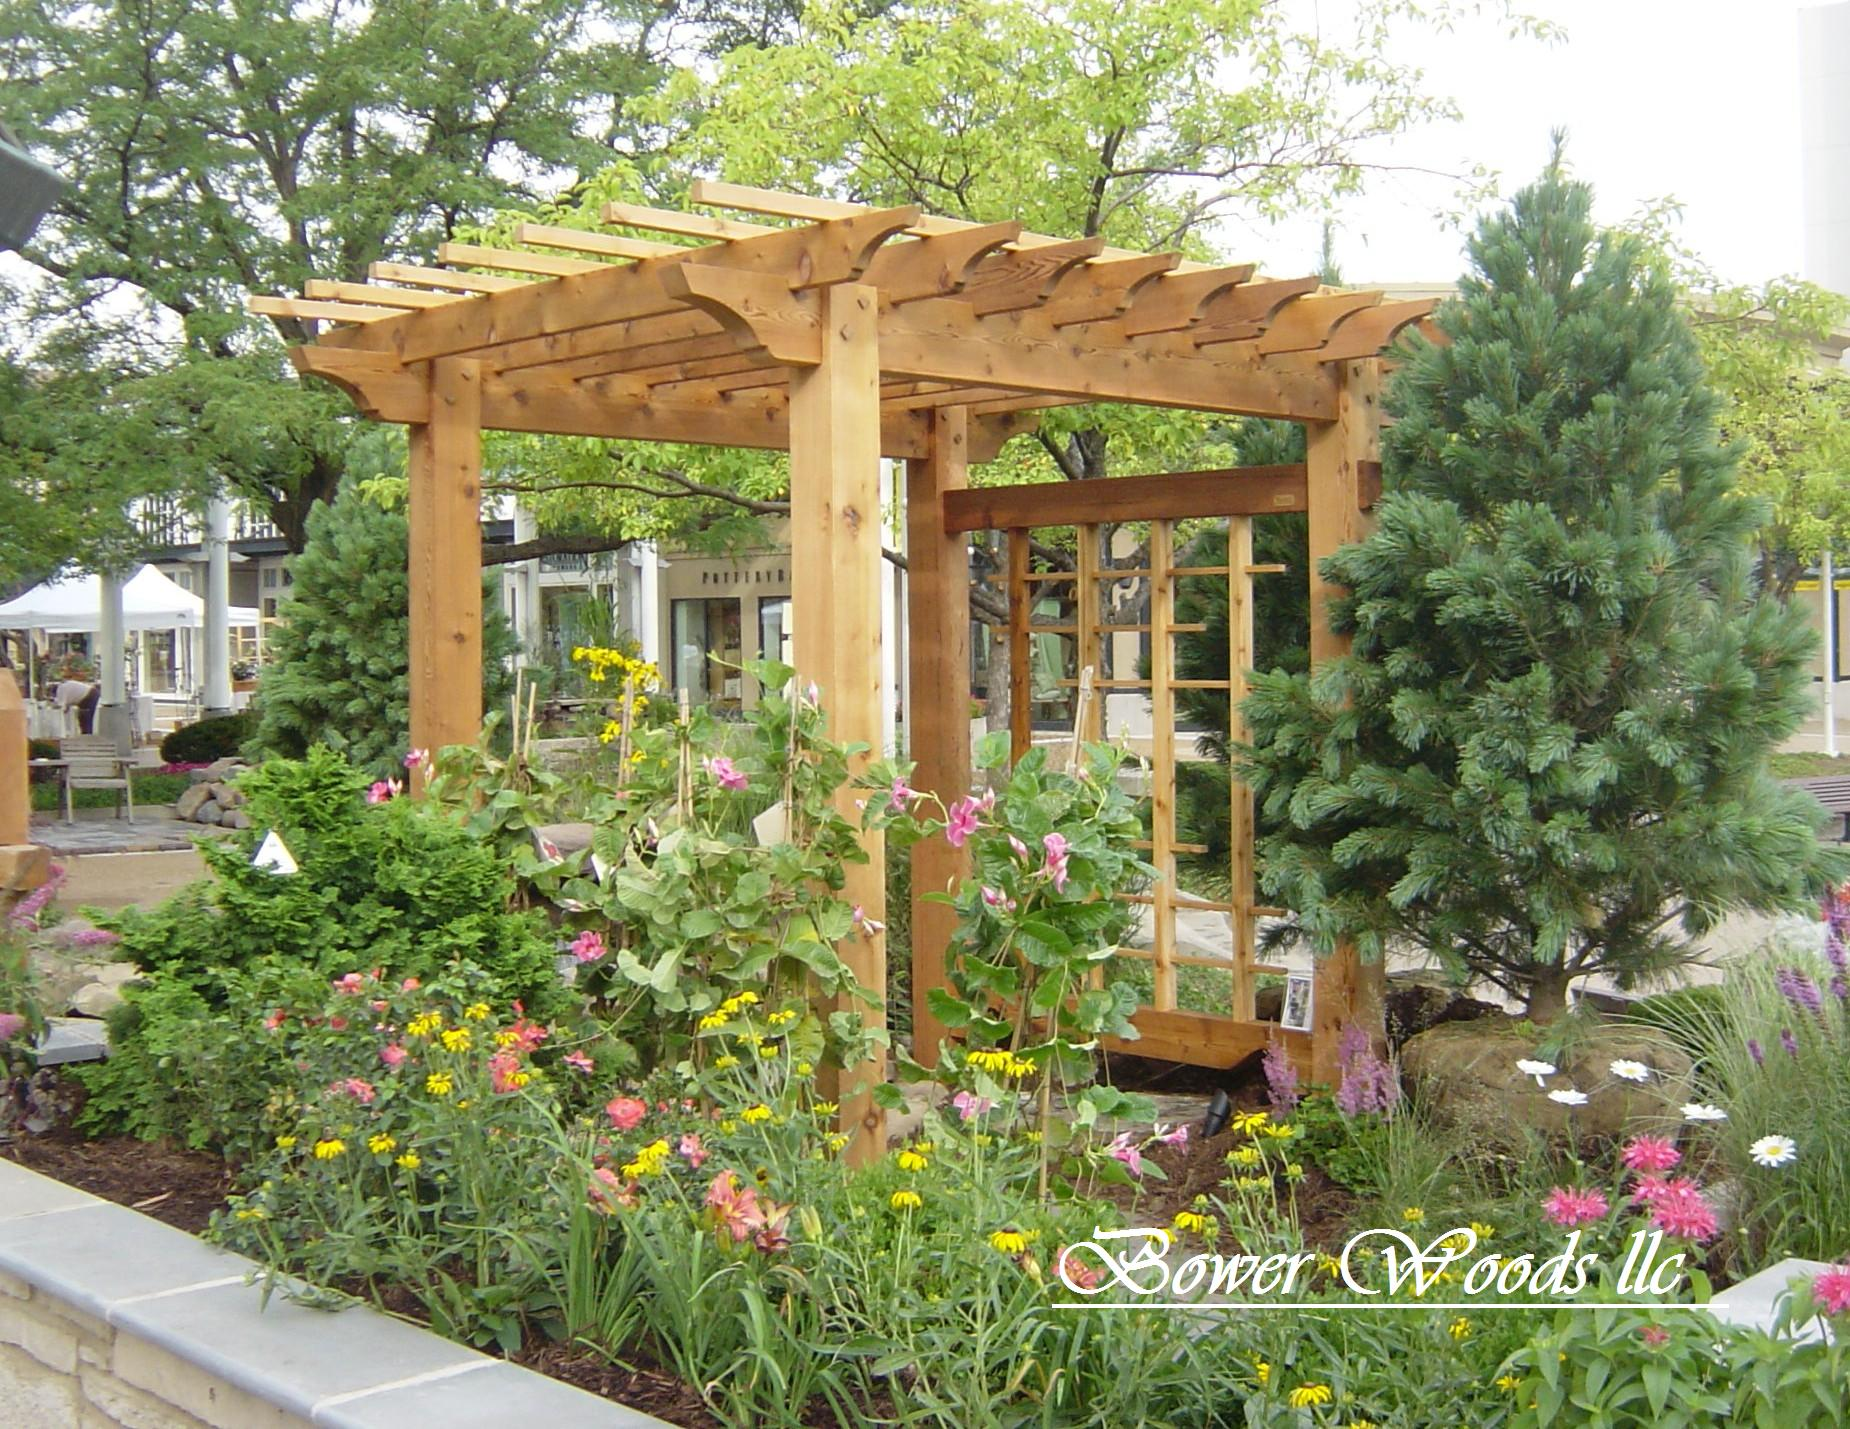 73 best ideas about arbor pergola on pinterest gardens backyards and white pergola arbor design - Arbor Designs Ideas